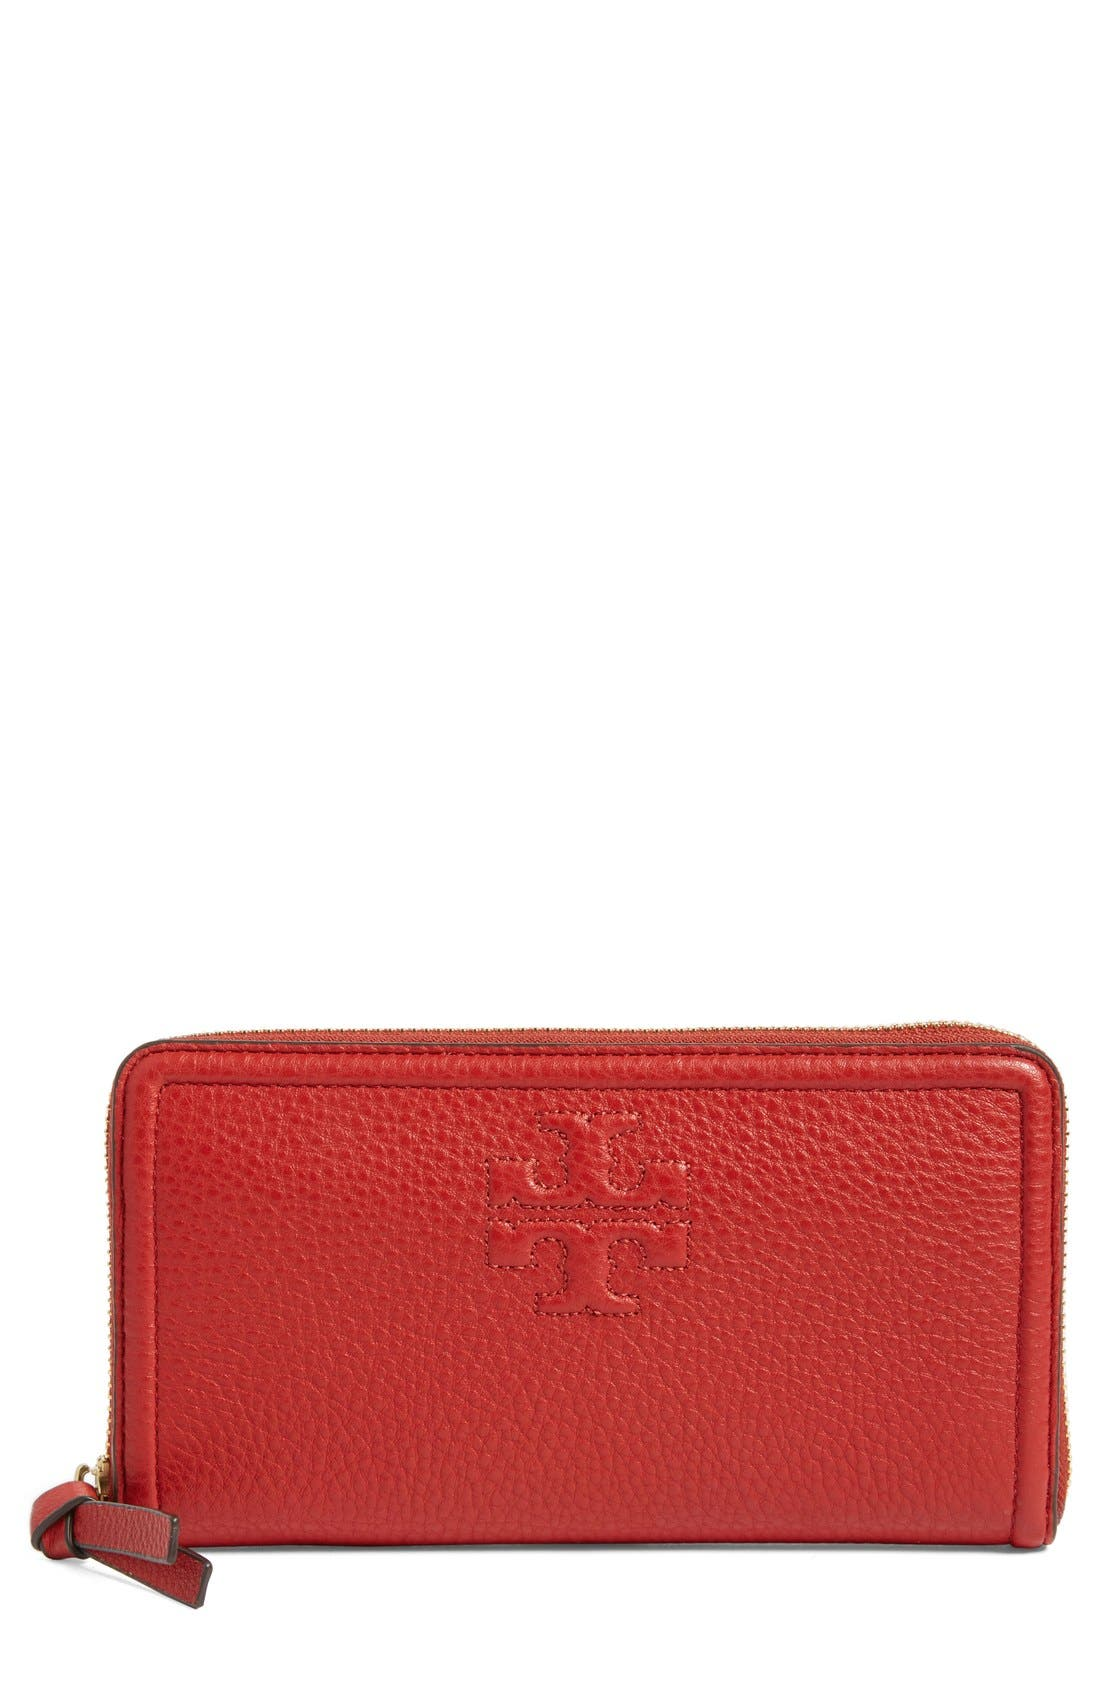 Main Image - Tory Burch 'Thea' Zip Leather Continental Wallet